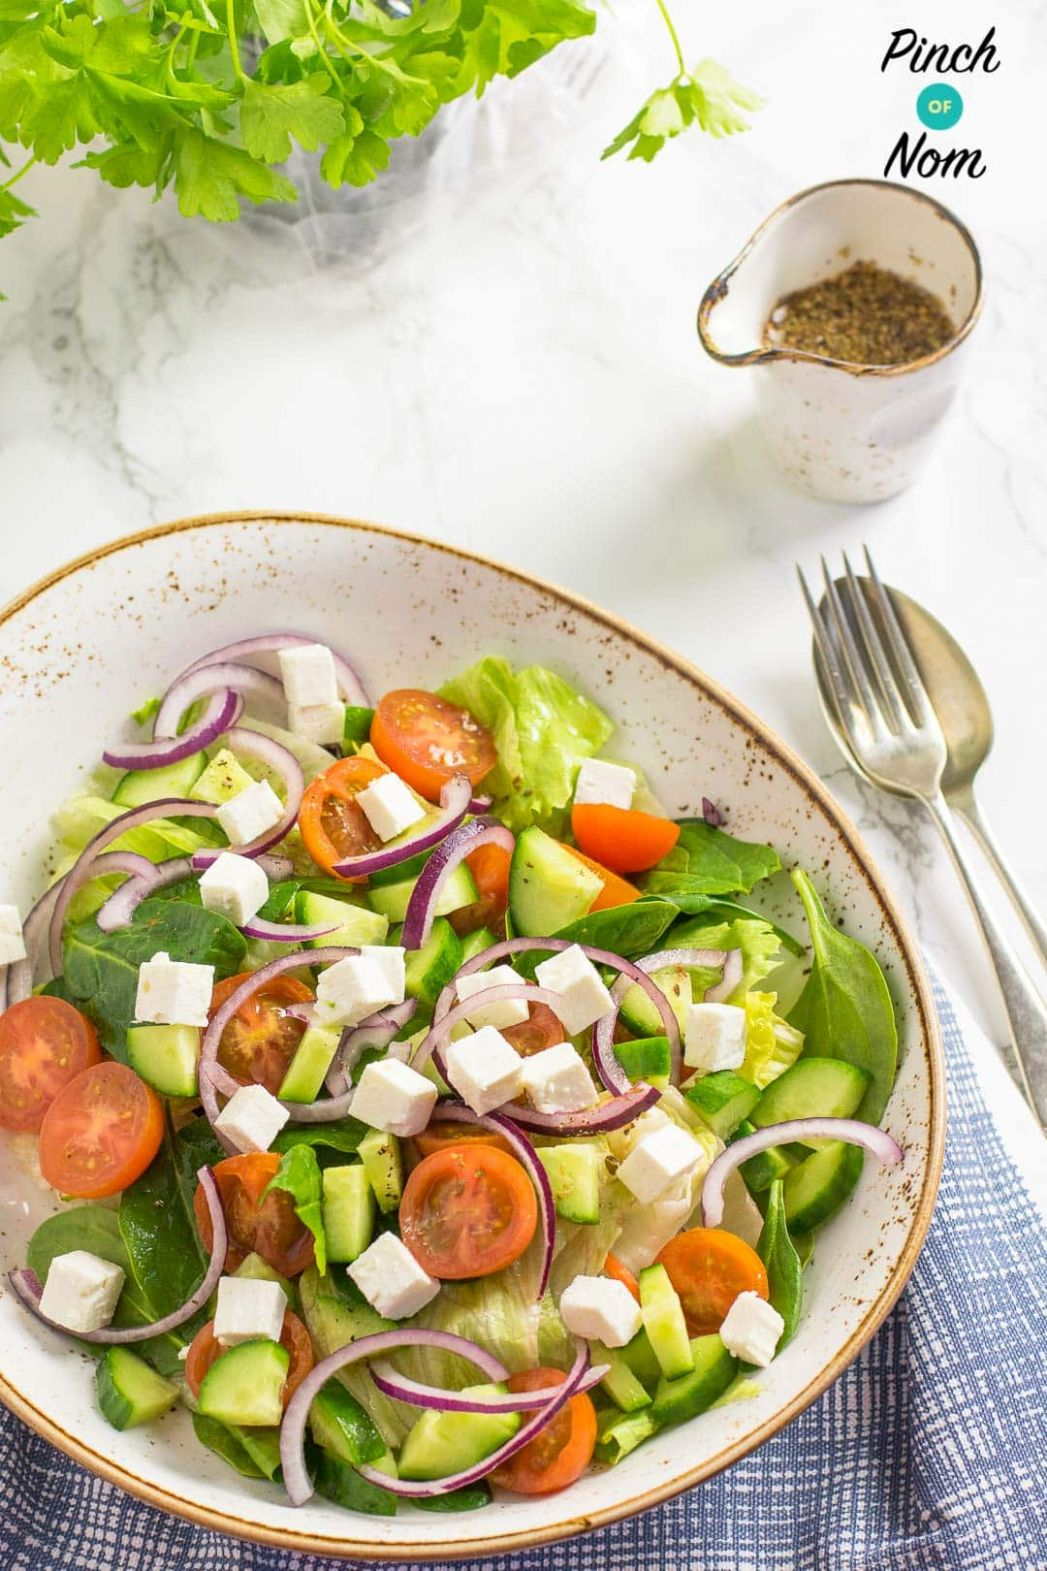 Greek Salad - Pinch Of Nom - Salad Recipes Slimming World